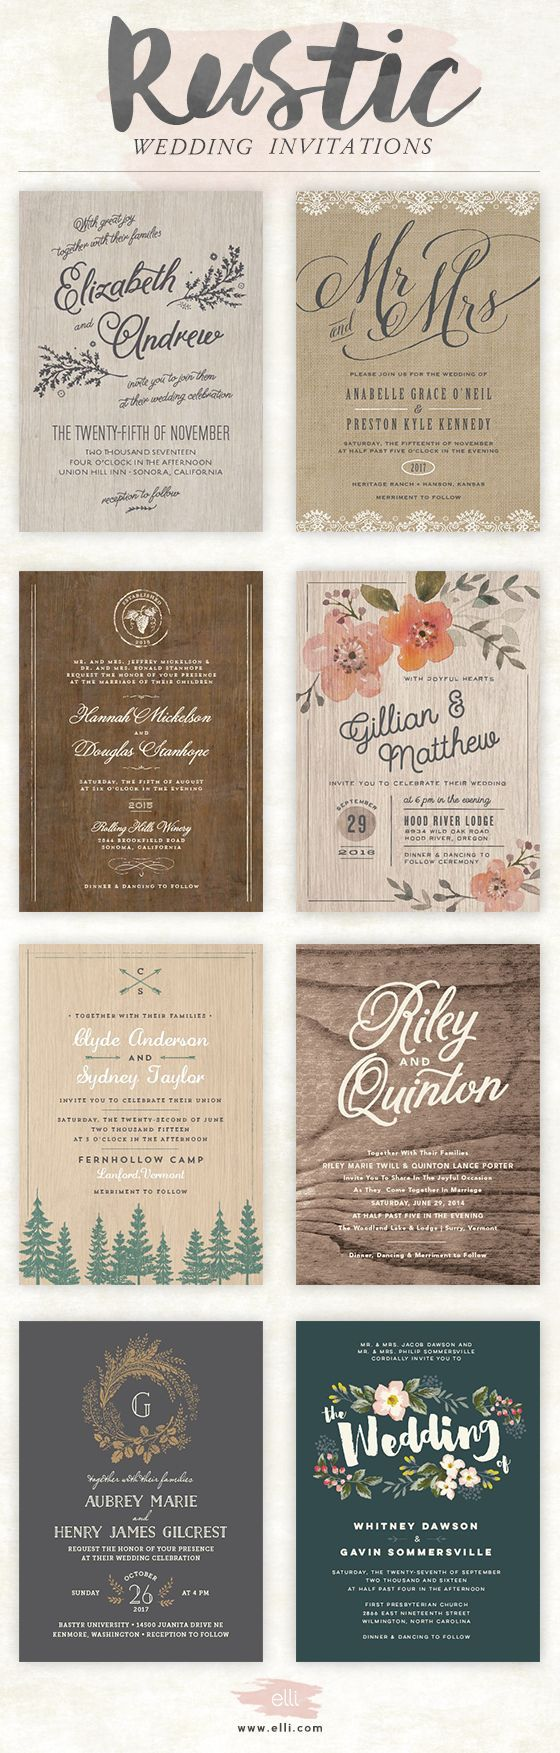 second wedding invitations wording%0A Rustic wedding invitations   bellacollina com   Bella Collina Weddings